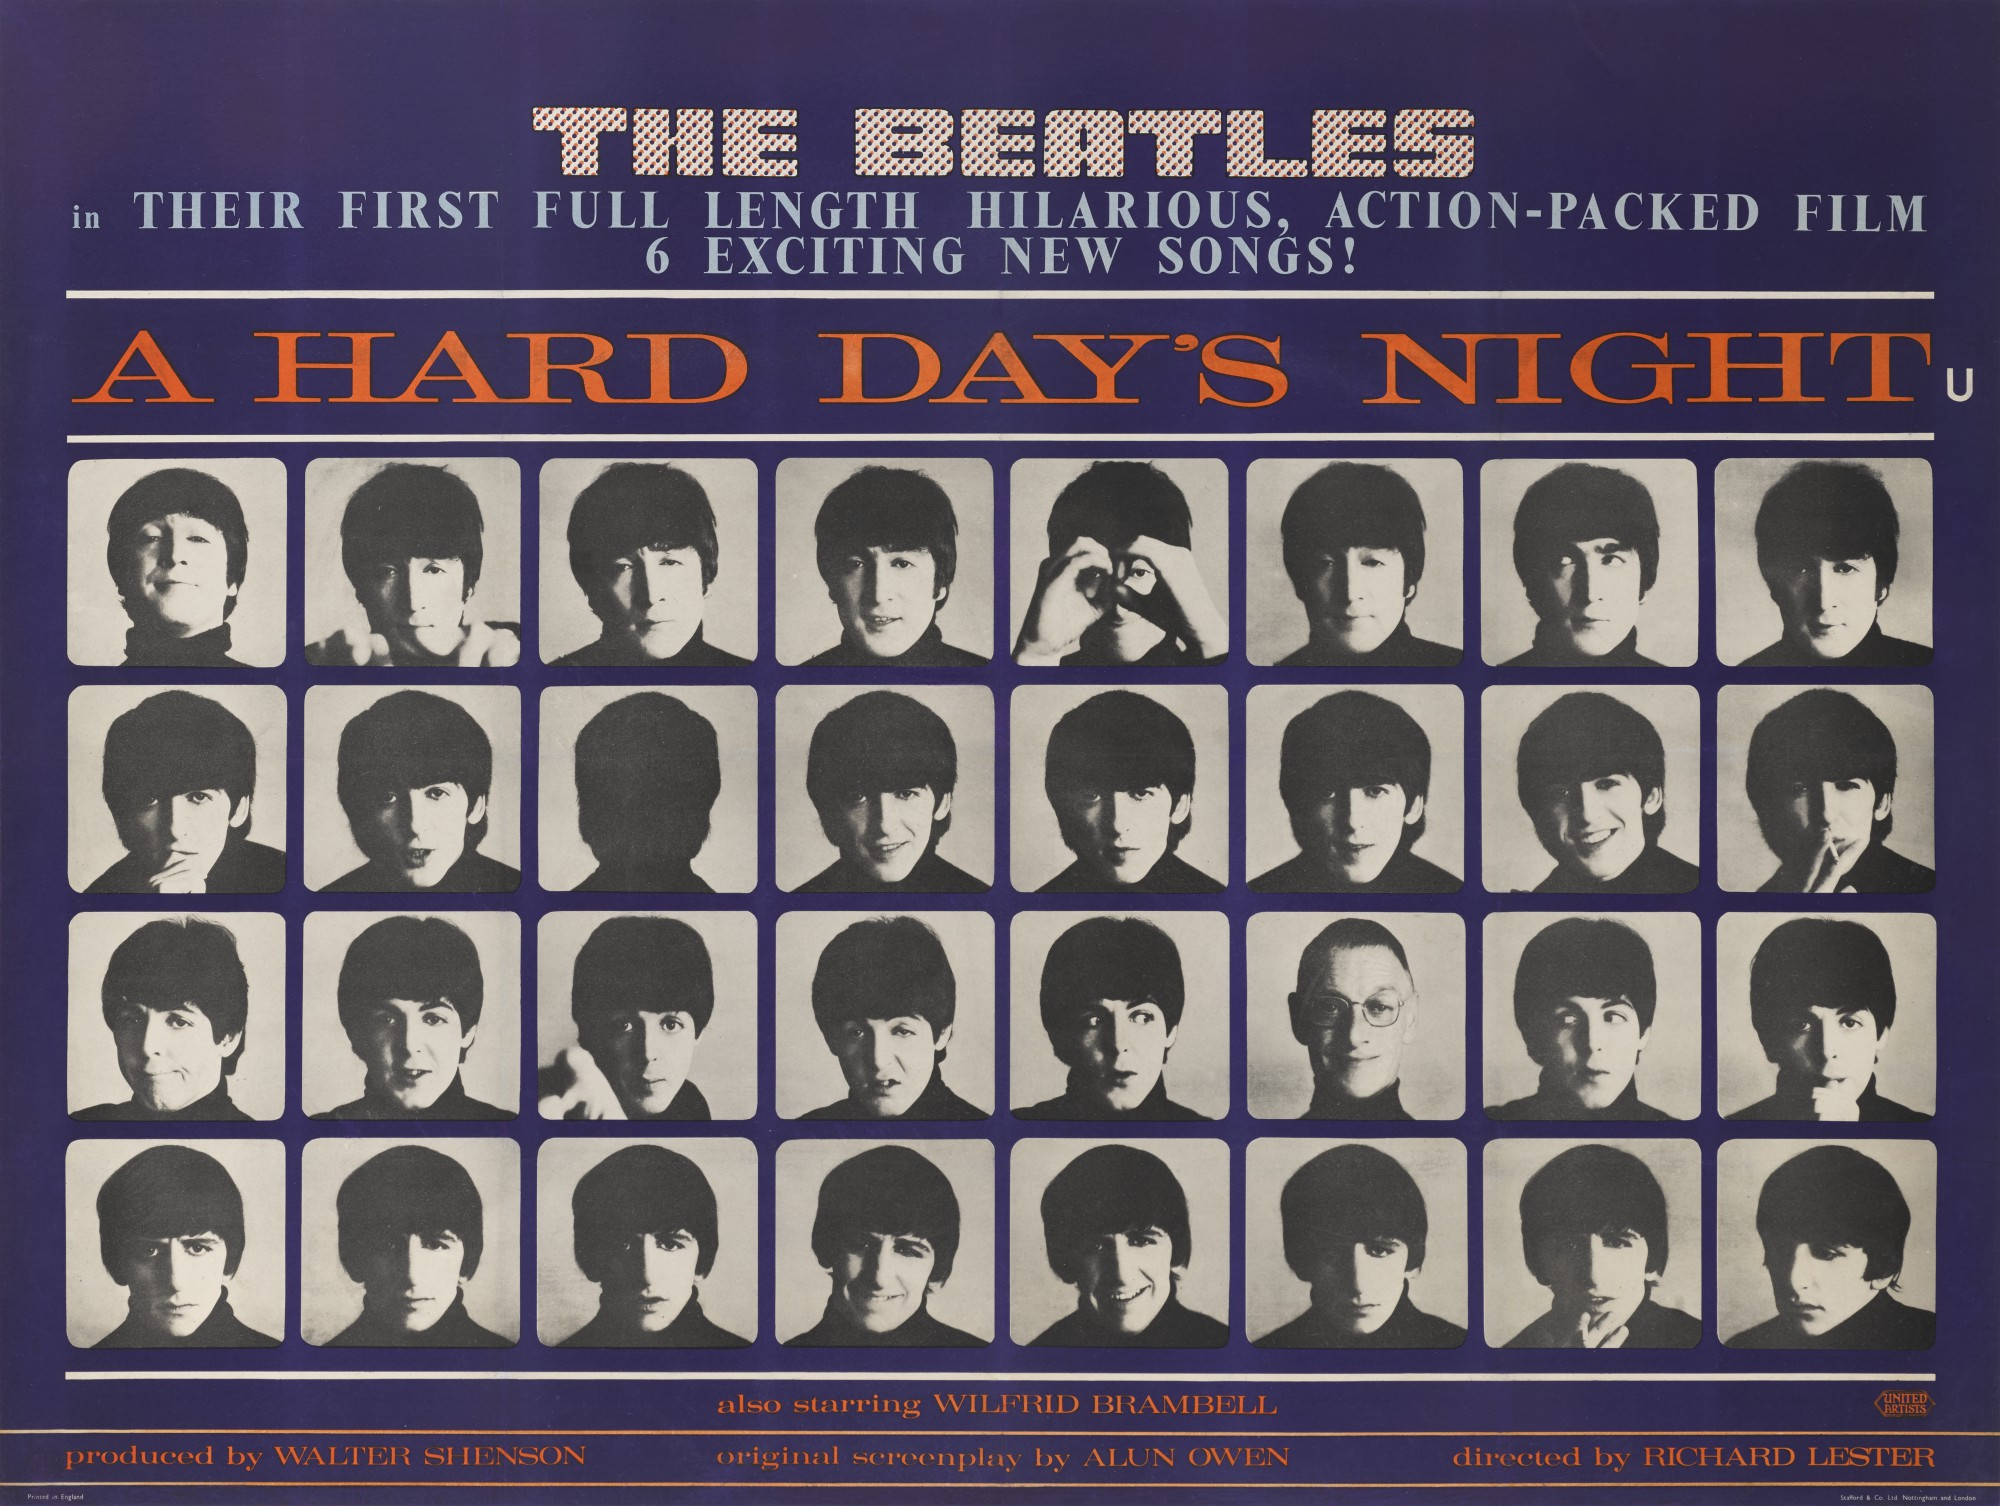 A HARD DAY'S NIGHT (1964) POSTER, BRITISH